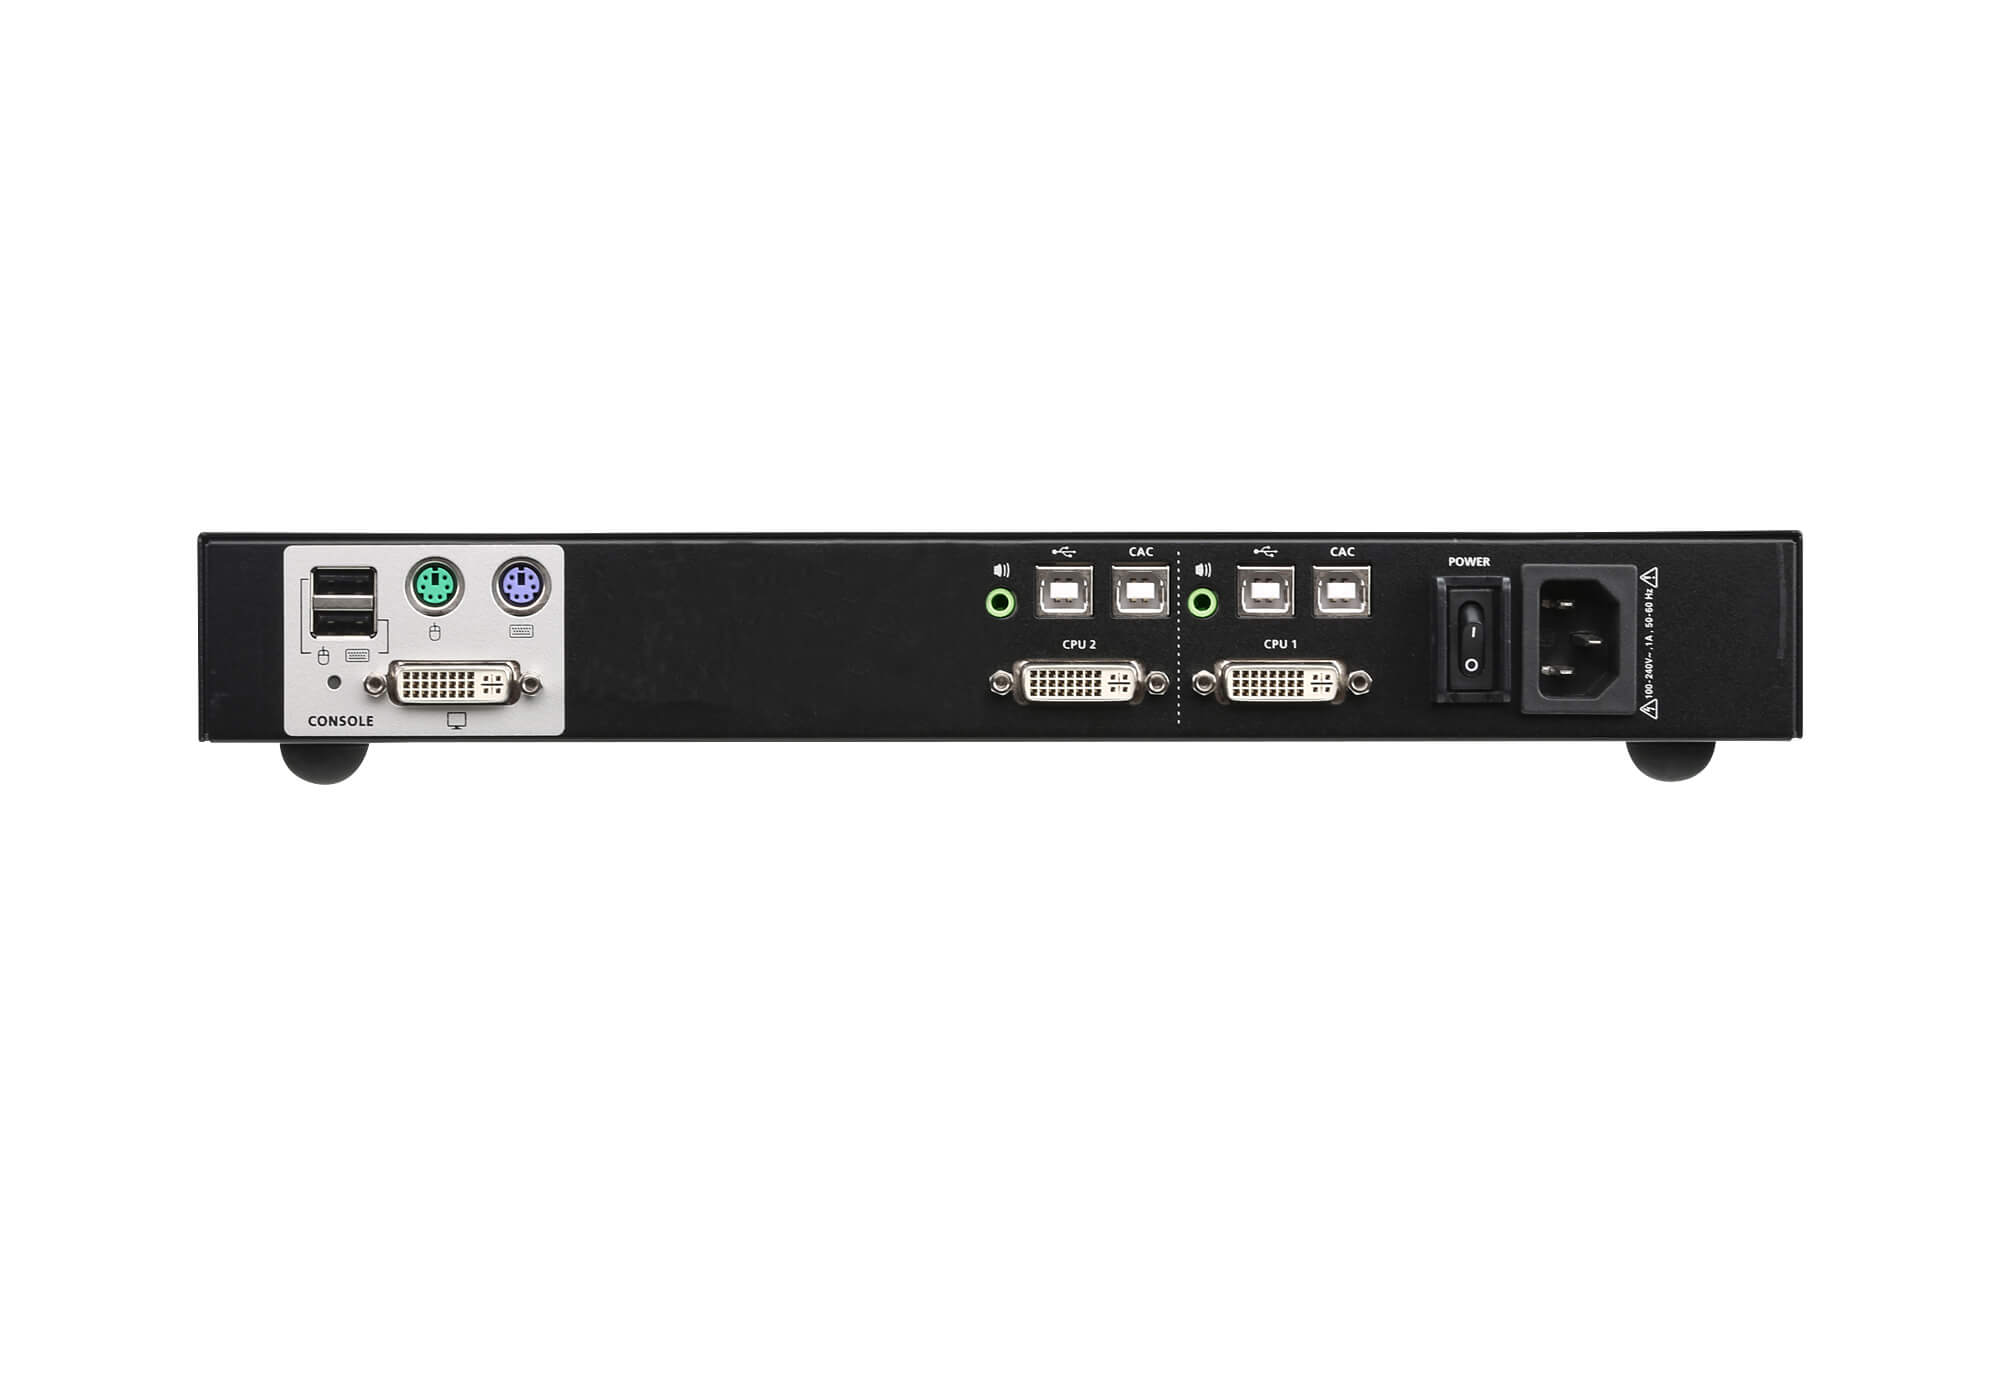 2-Port USB DVI Secure KVM Switch (PSS PP v3.0 konform)-2